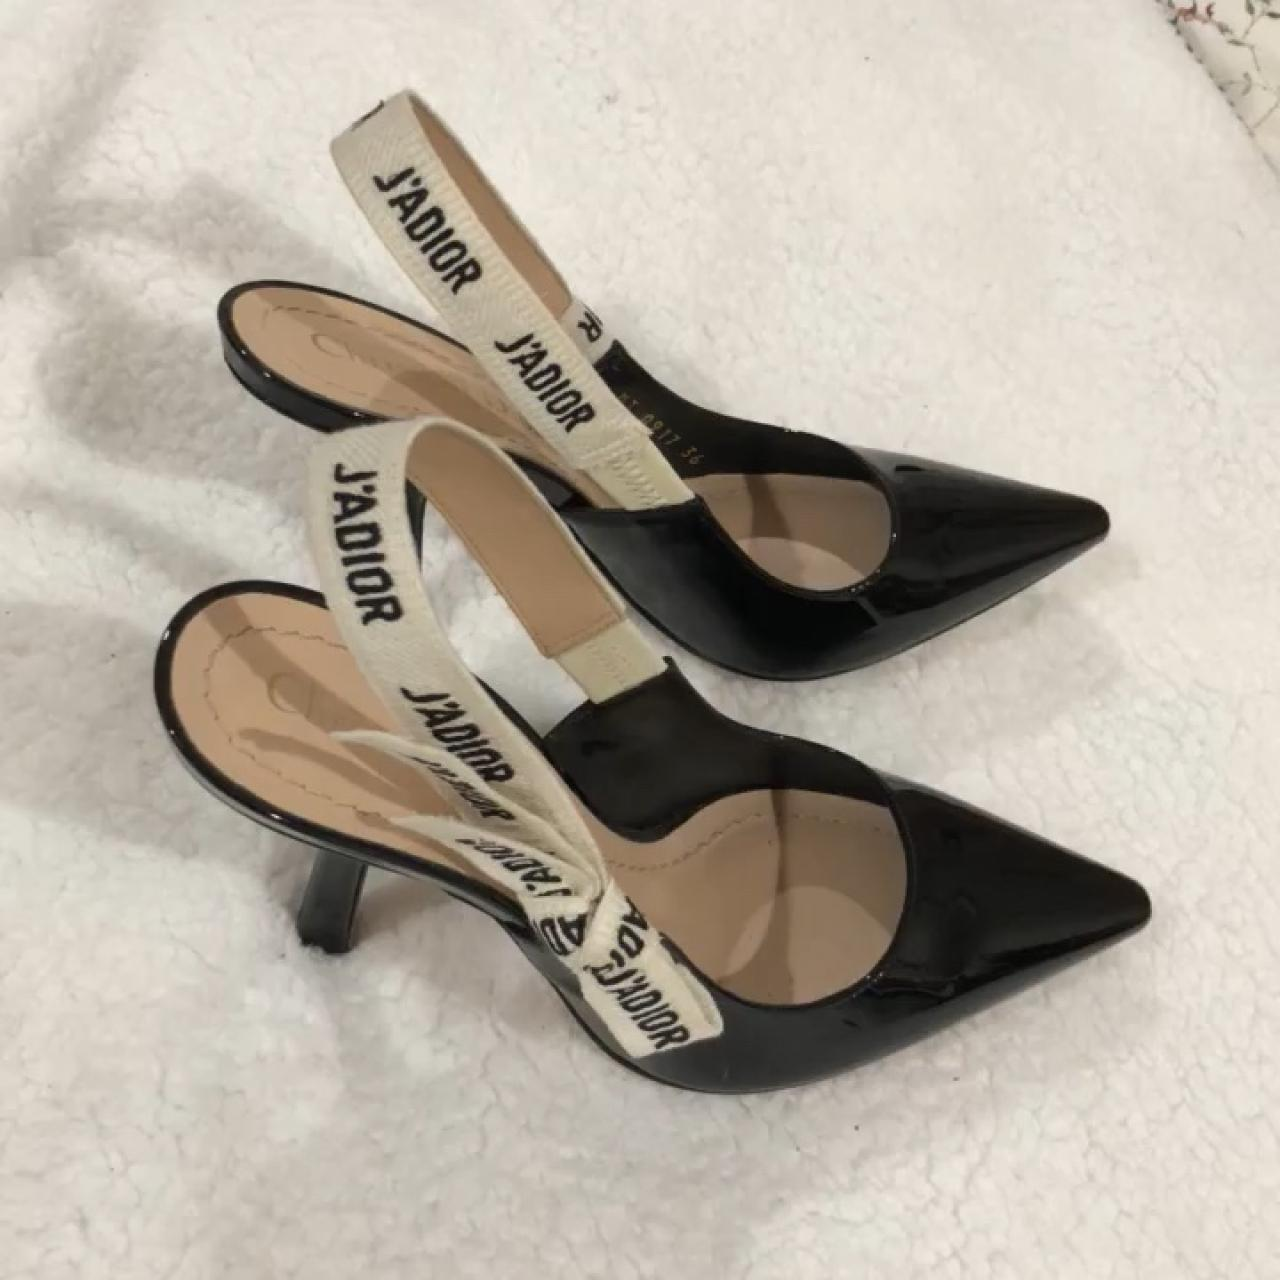 a8011642c 100% Authentic Dior kitten heels. retails for 1000 including - Depop